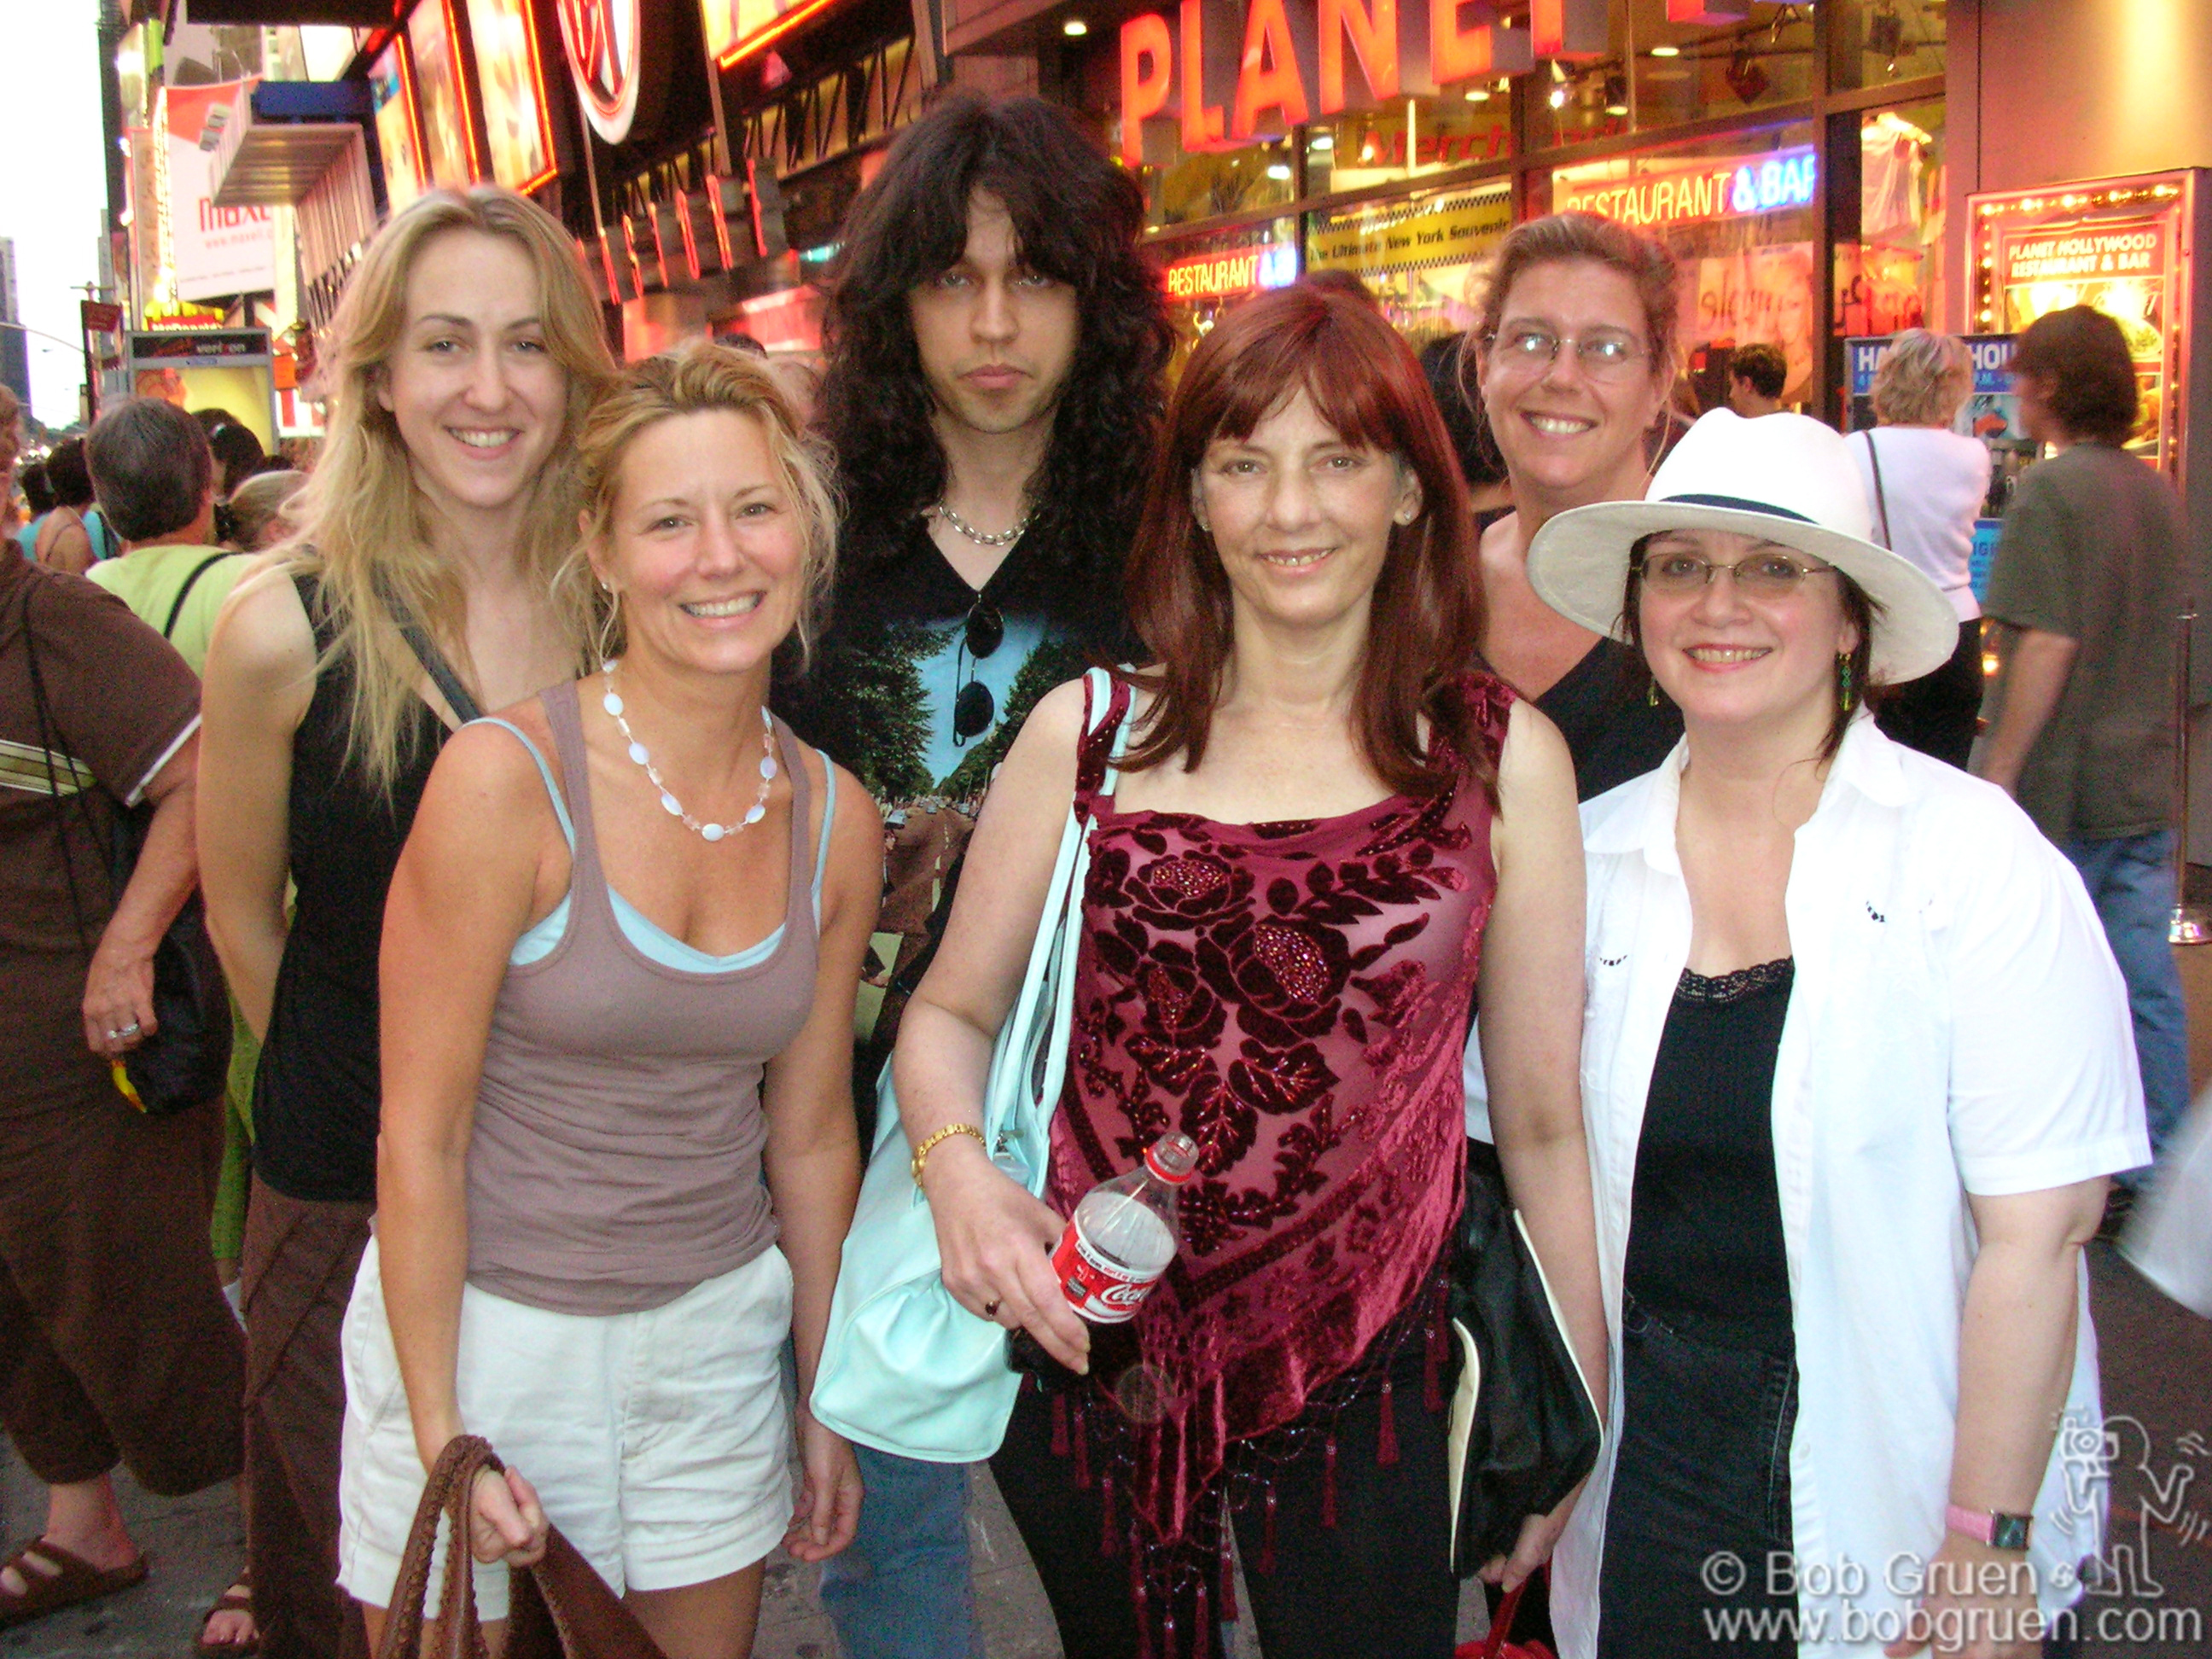 "July 17 - NYC - From left to right photographers Hanna Toresson & Linda Rowe, Bill May & Virginia Lohle from Star File Photo Agency, my wife Elizabeth and Karla Merrifield in Times Square after a screening in July for the new film ""US vs John Lennon""."